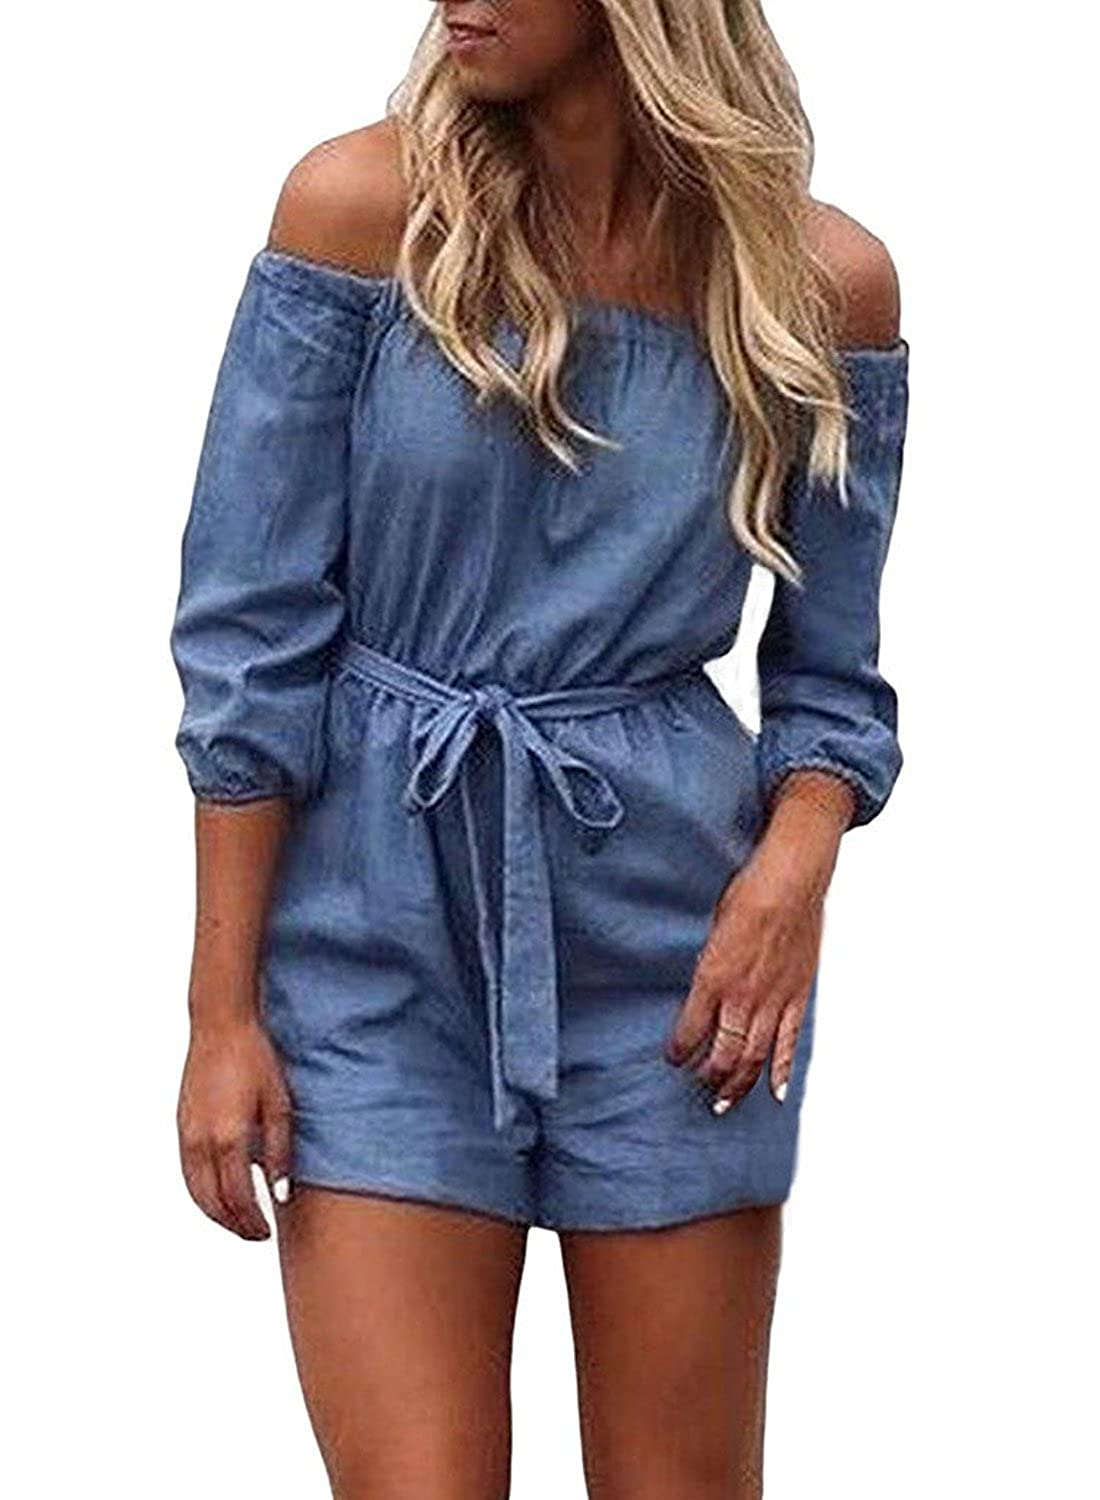 74c2fe79a10 Amazon.com  MNLYBABY Off Shoulder Denim Rompers for Women Half Sleeve Loose  Casual Denim Short Jumpsuit Playsuit Overalls  Clothing